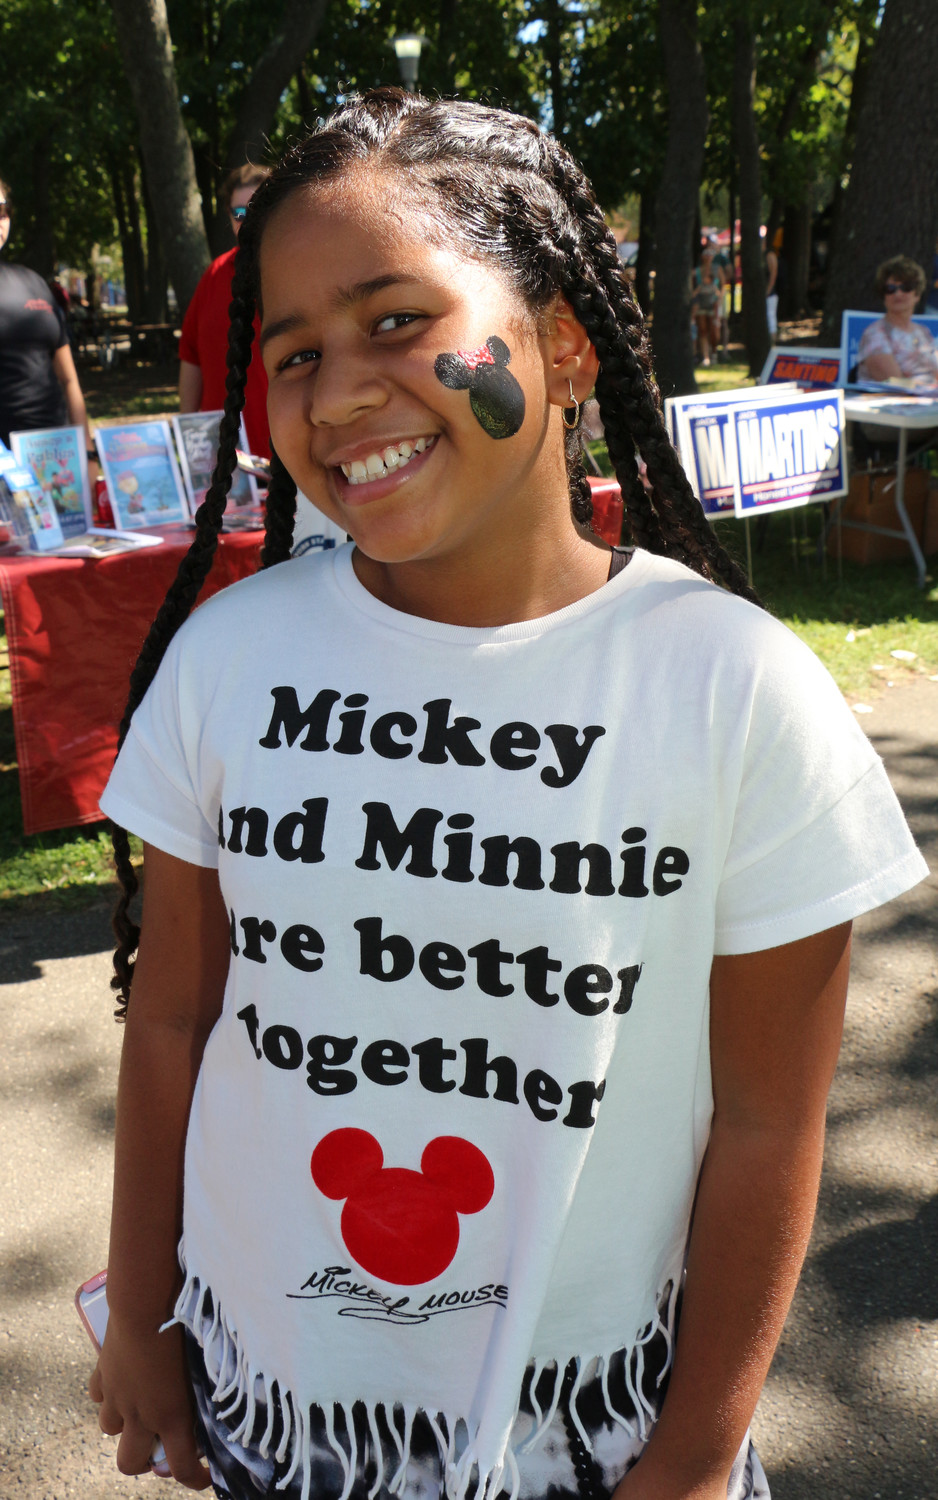 Jiyannah Perez, 9, got her face painted with Minnie Mouse.